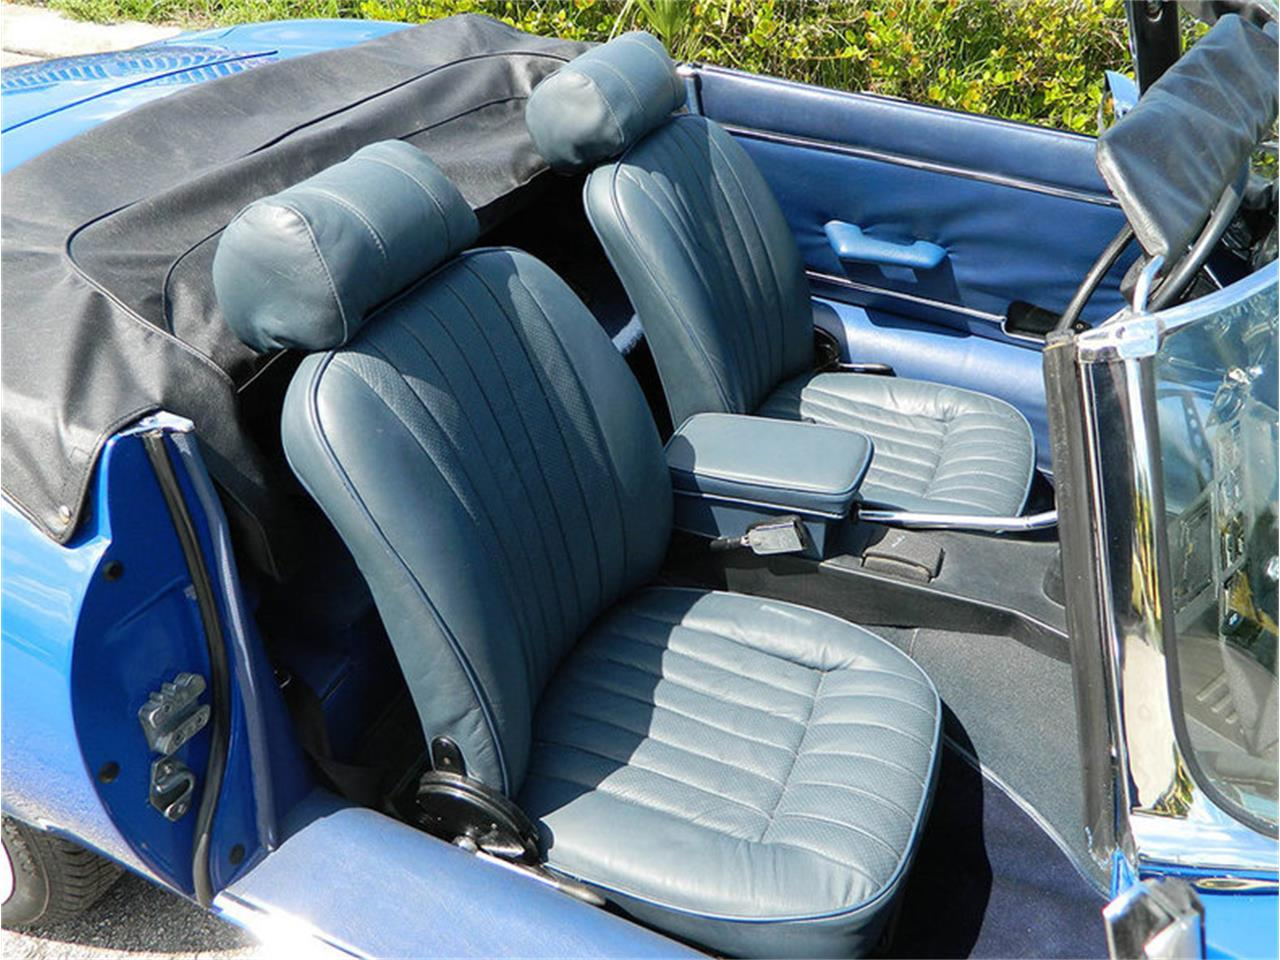 Large Picture of '73 Jaguar XKE Auction Vehicle Offered by GAA Classic Cars Auctions - NO0U